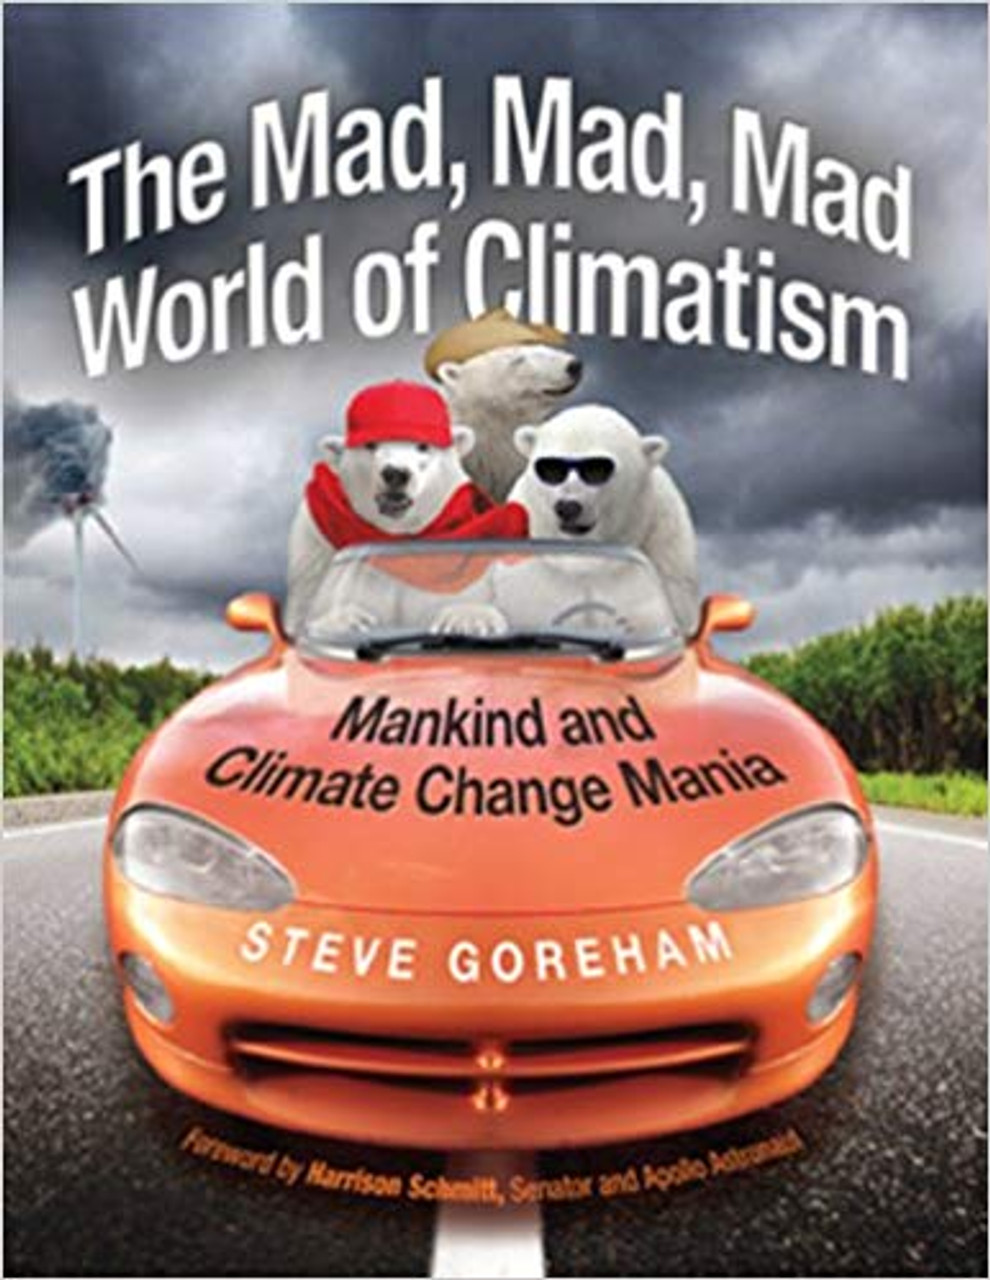 The Mad  Mad  Mad World of Climatism